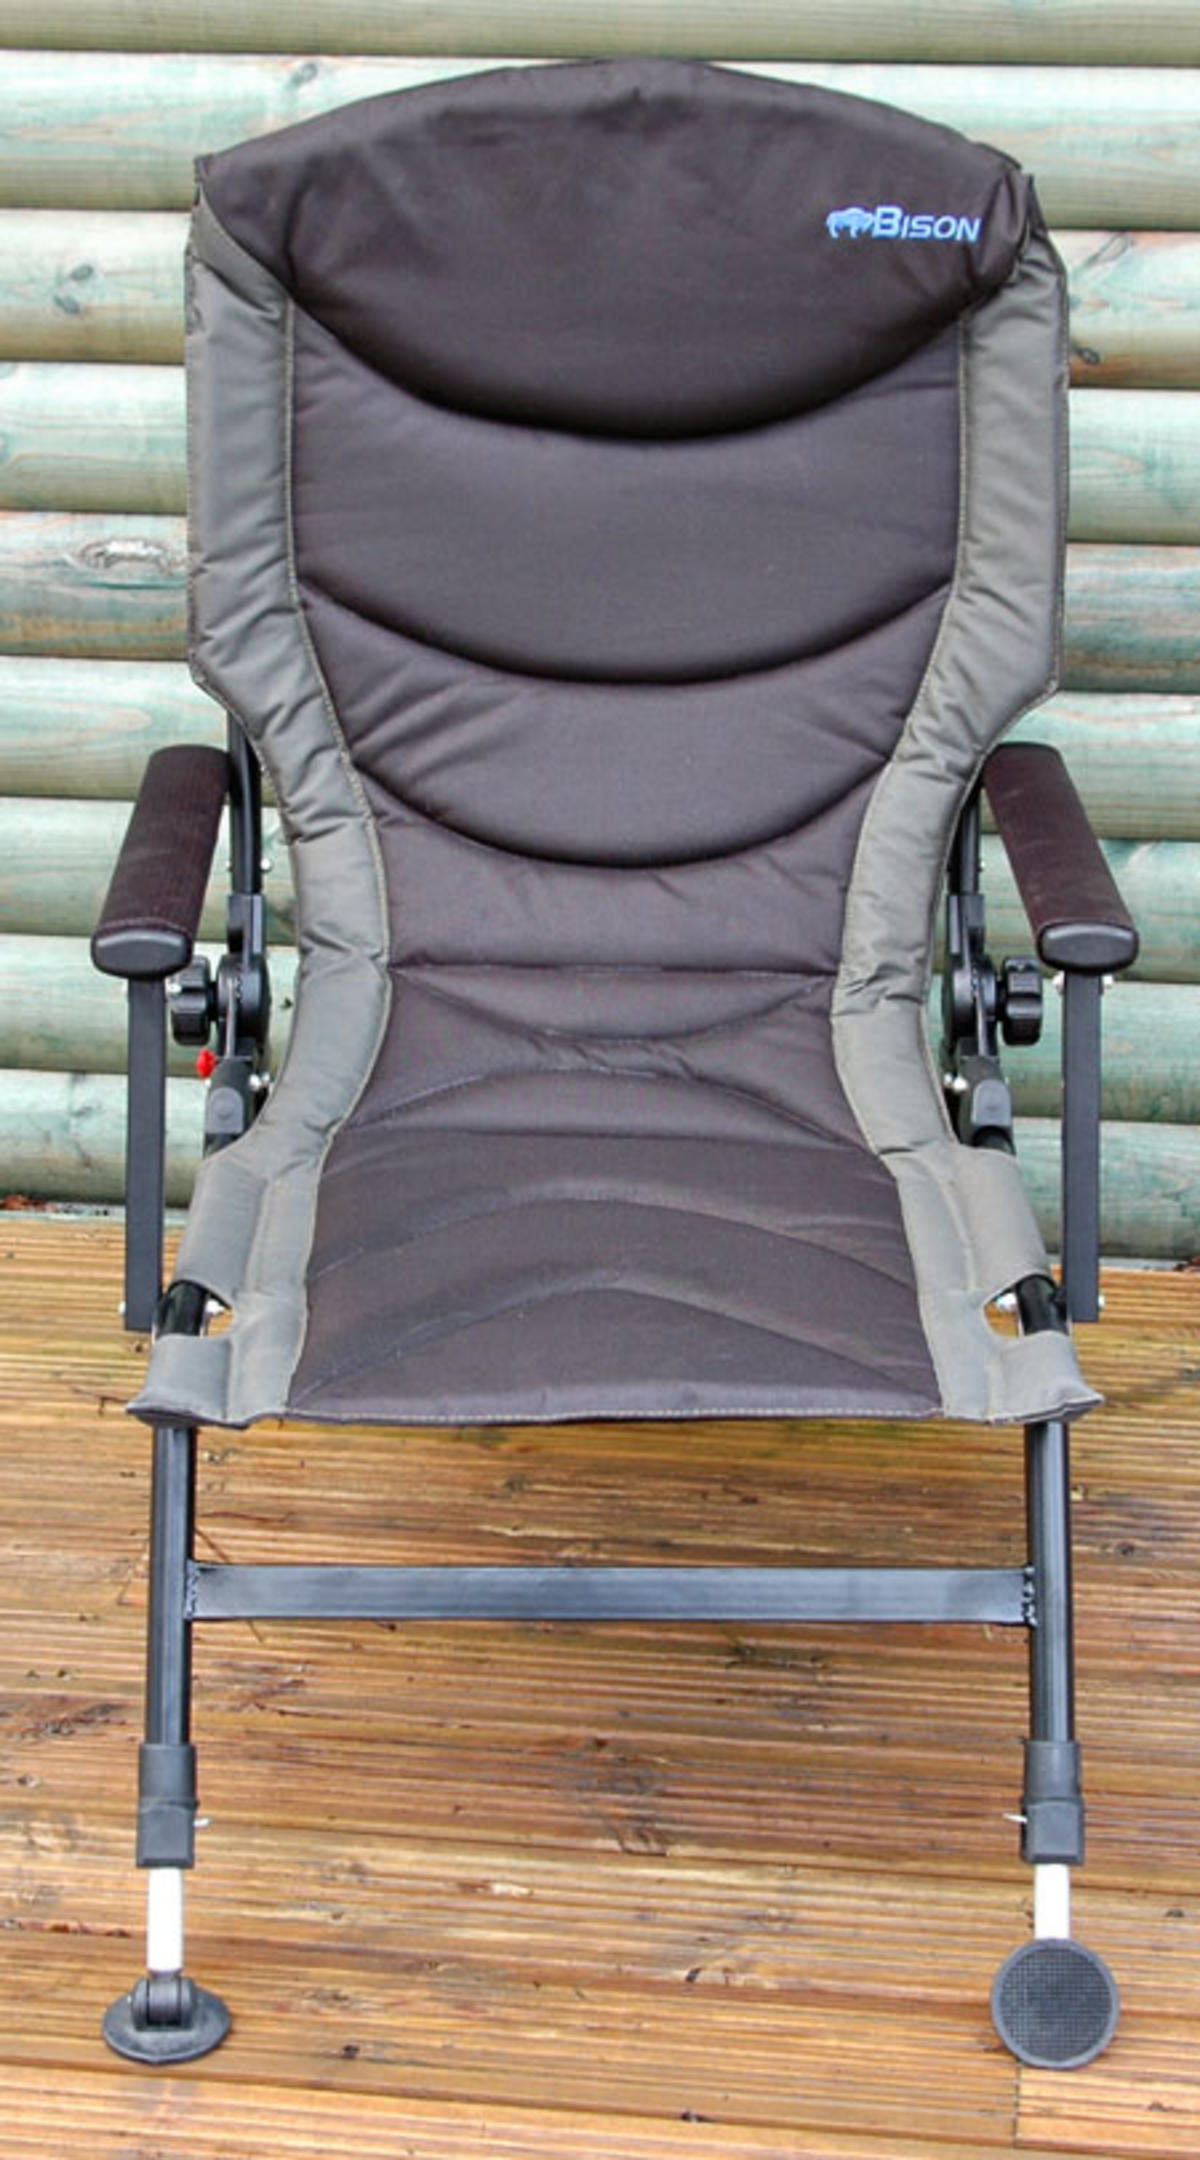 Bison Delux Carp Chair Adjustable Legs Back Recliner